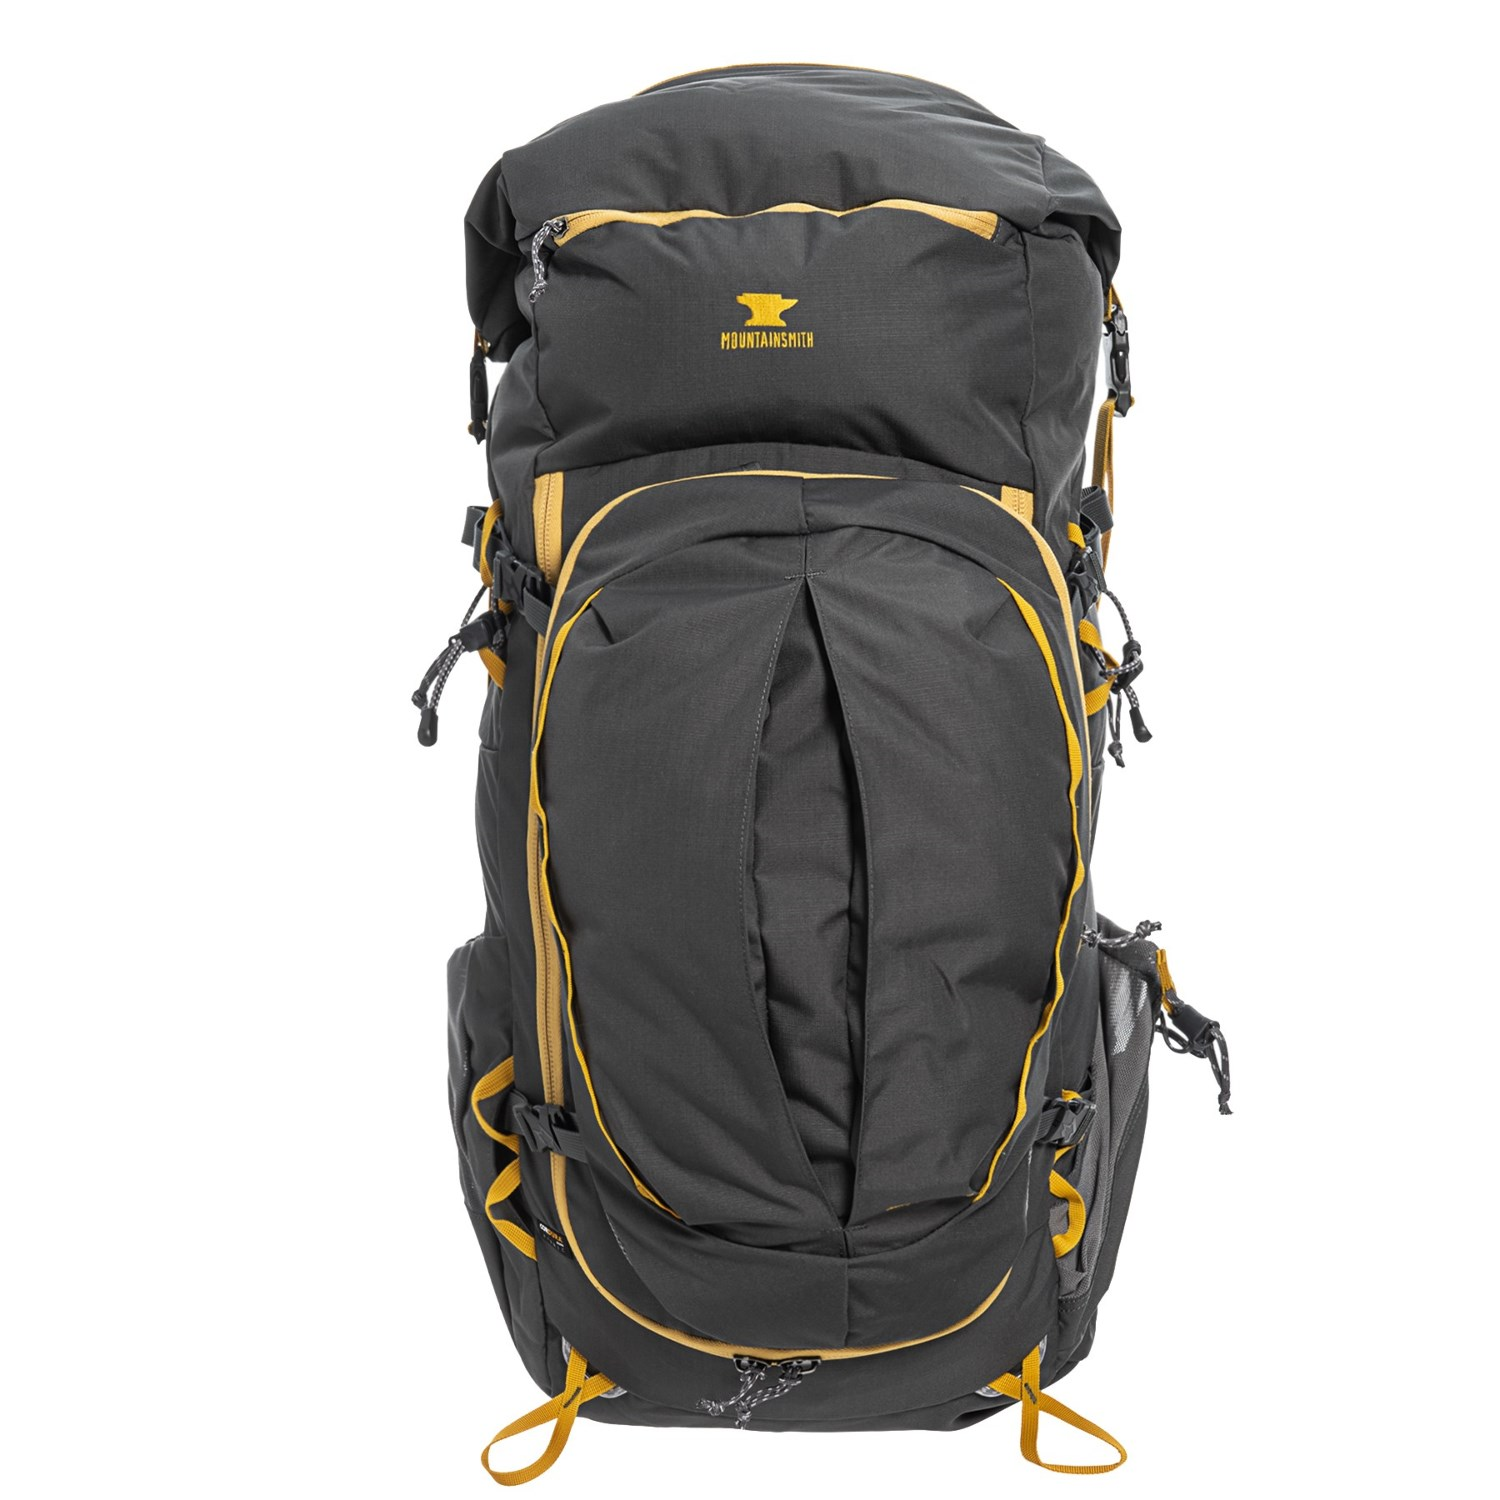 a1bce9bb89f8 Mountainsmith Lariat 65L Backpack - Internal Frame